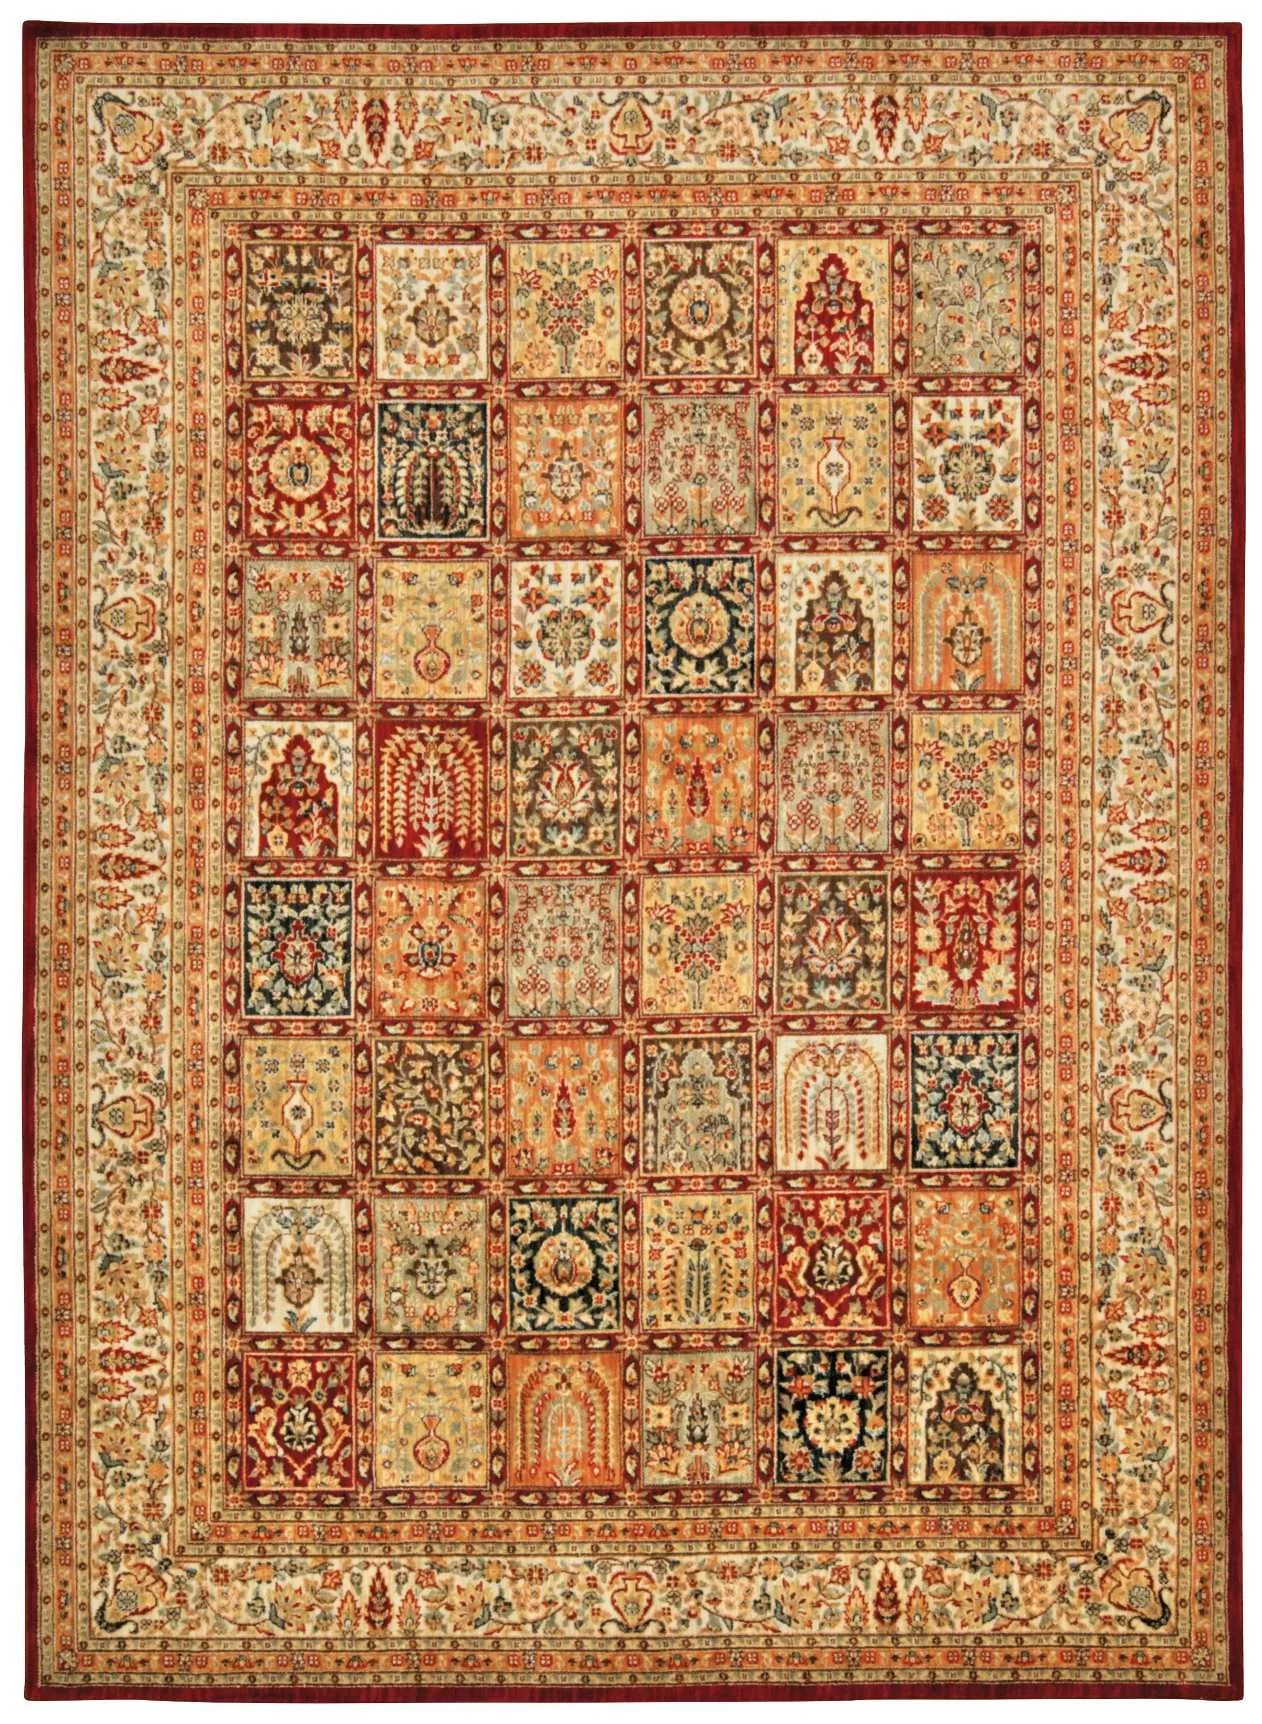 Asian Carpet Ancient Times Asian Dynasty Multicolor Area Rug